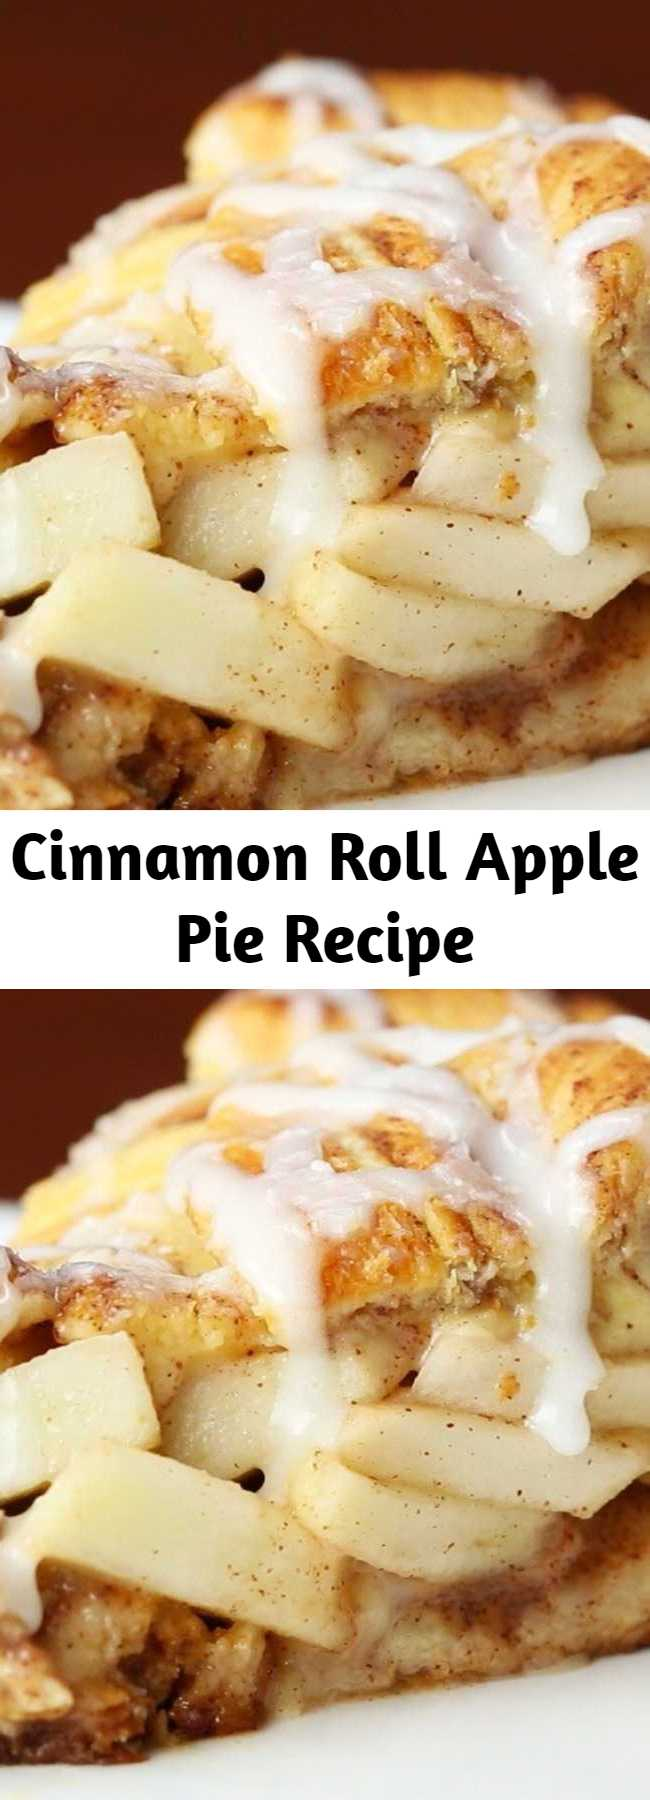 Cinnamon Roll Apple Pie Recipe - Cinnamon rolls and apple pie all in one? It's almost too good to be true! This amazing dessert only has 5 ingredients and is perfect to make for Thanksgiving, a holiday party, or even just to enjoy the fall weather.